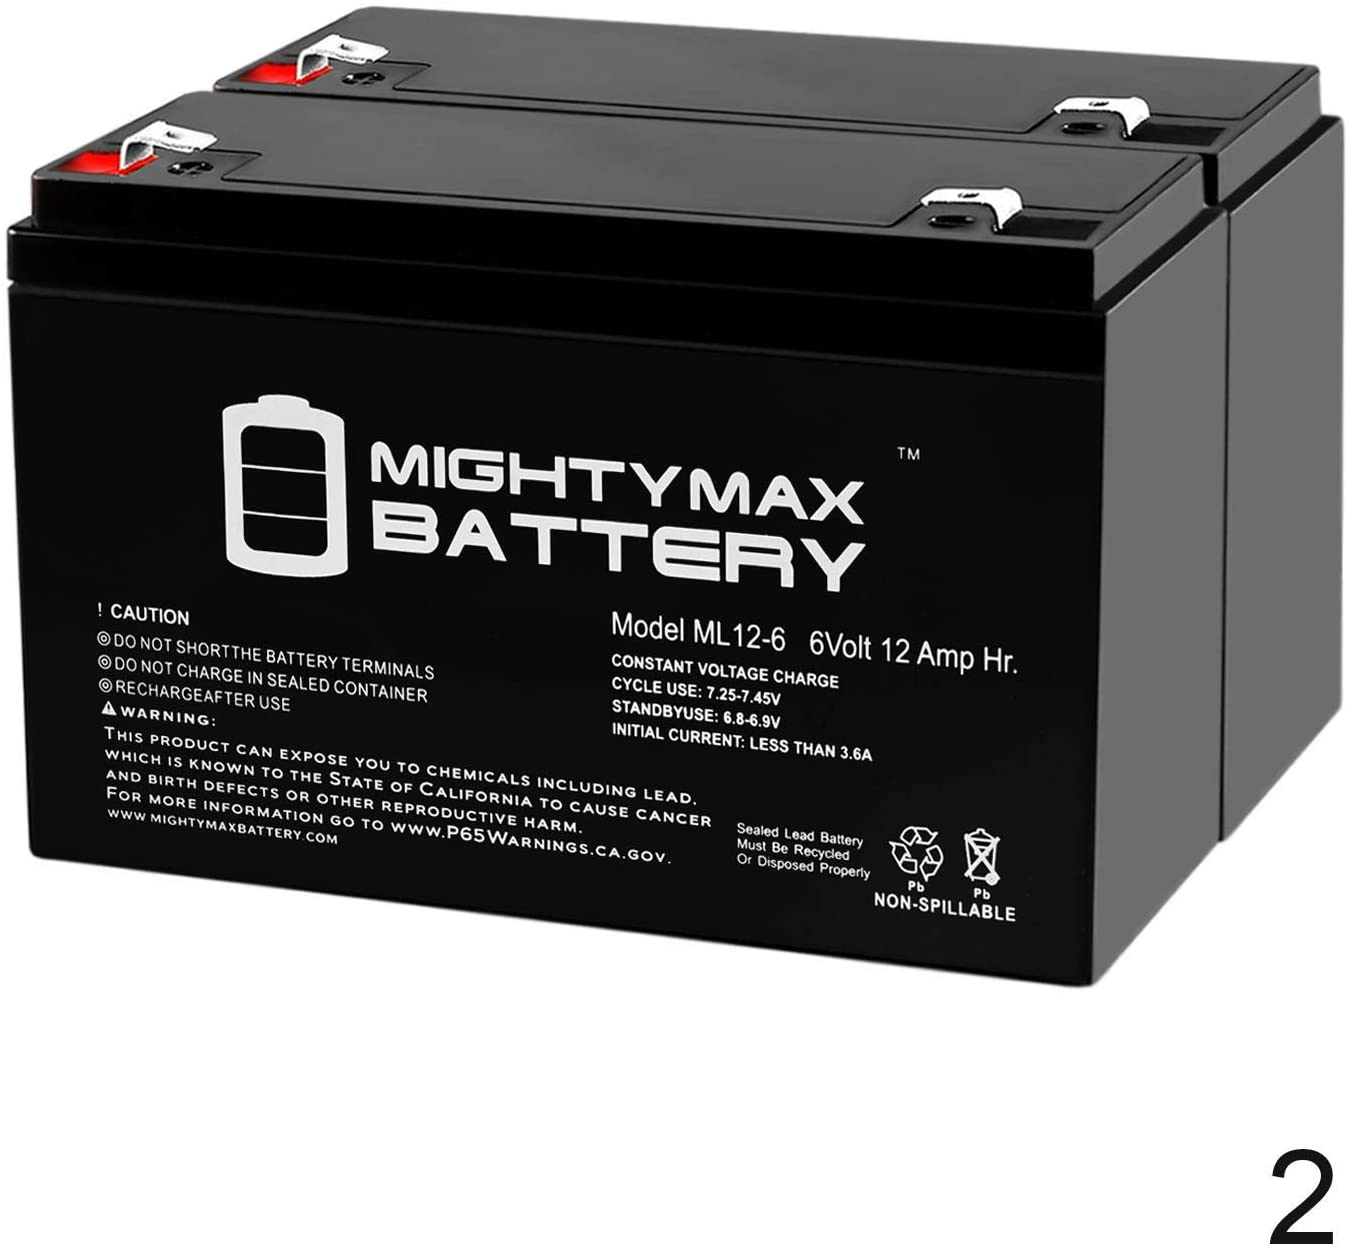 Mighty Max Battery 6V 12AH F2 Replacement Battery for Tripp Lite OMNISM1000USB - 2 Pack Brand Product